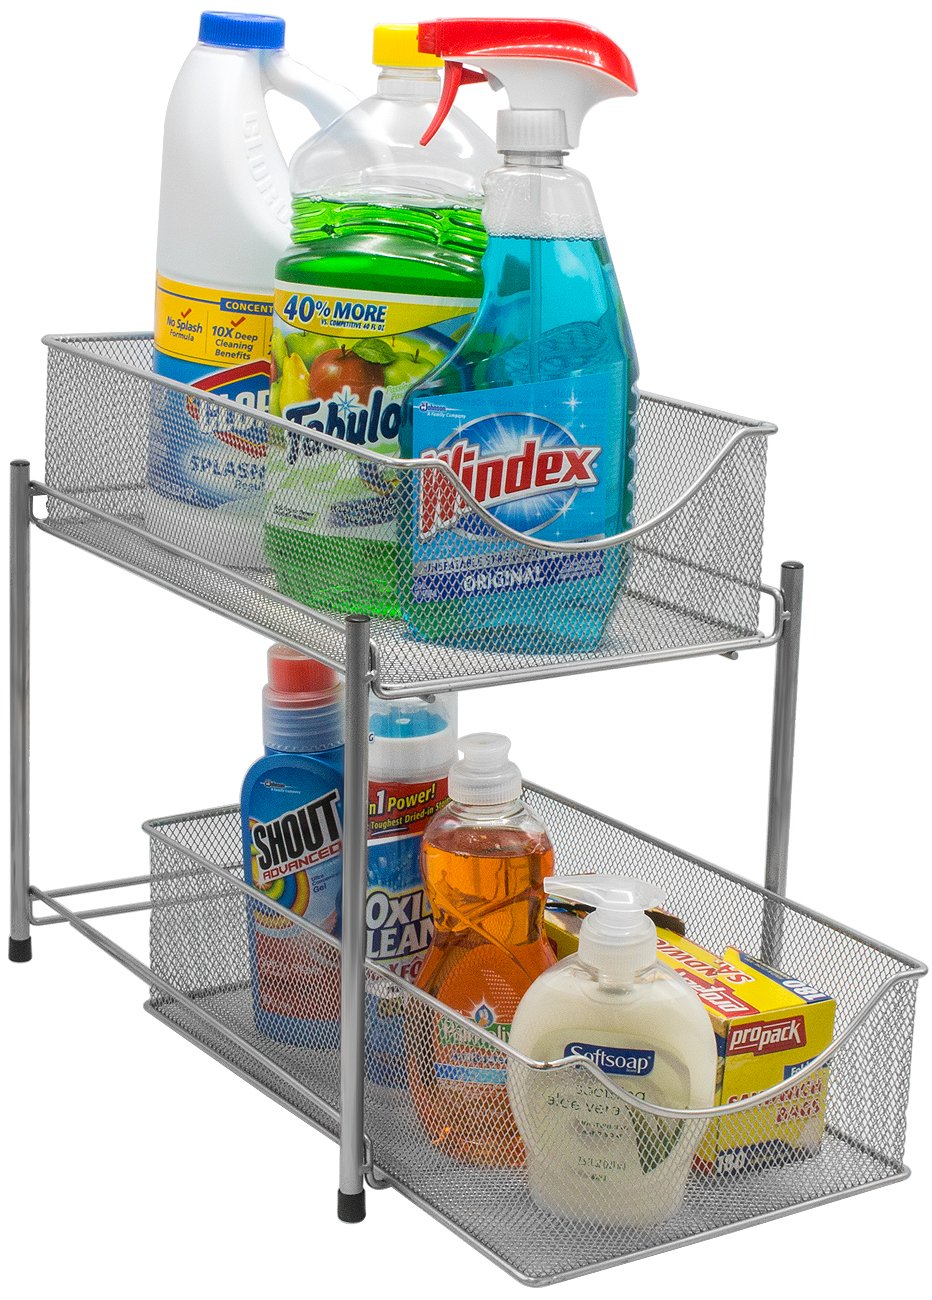 2 Tier Organizer Baskets with Mesh Sliding Drawers, Ideal Cabinet, Countertop, Pantry, Under the Sink, and Desktop Organizer for Bathroom,Kitchen, Office, etc.Made of Steel (Silver)